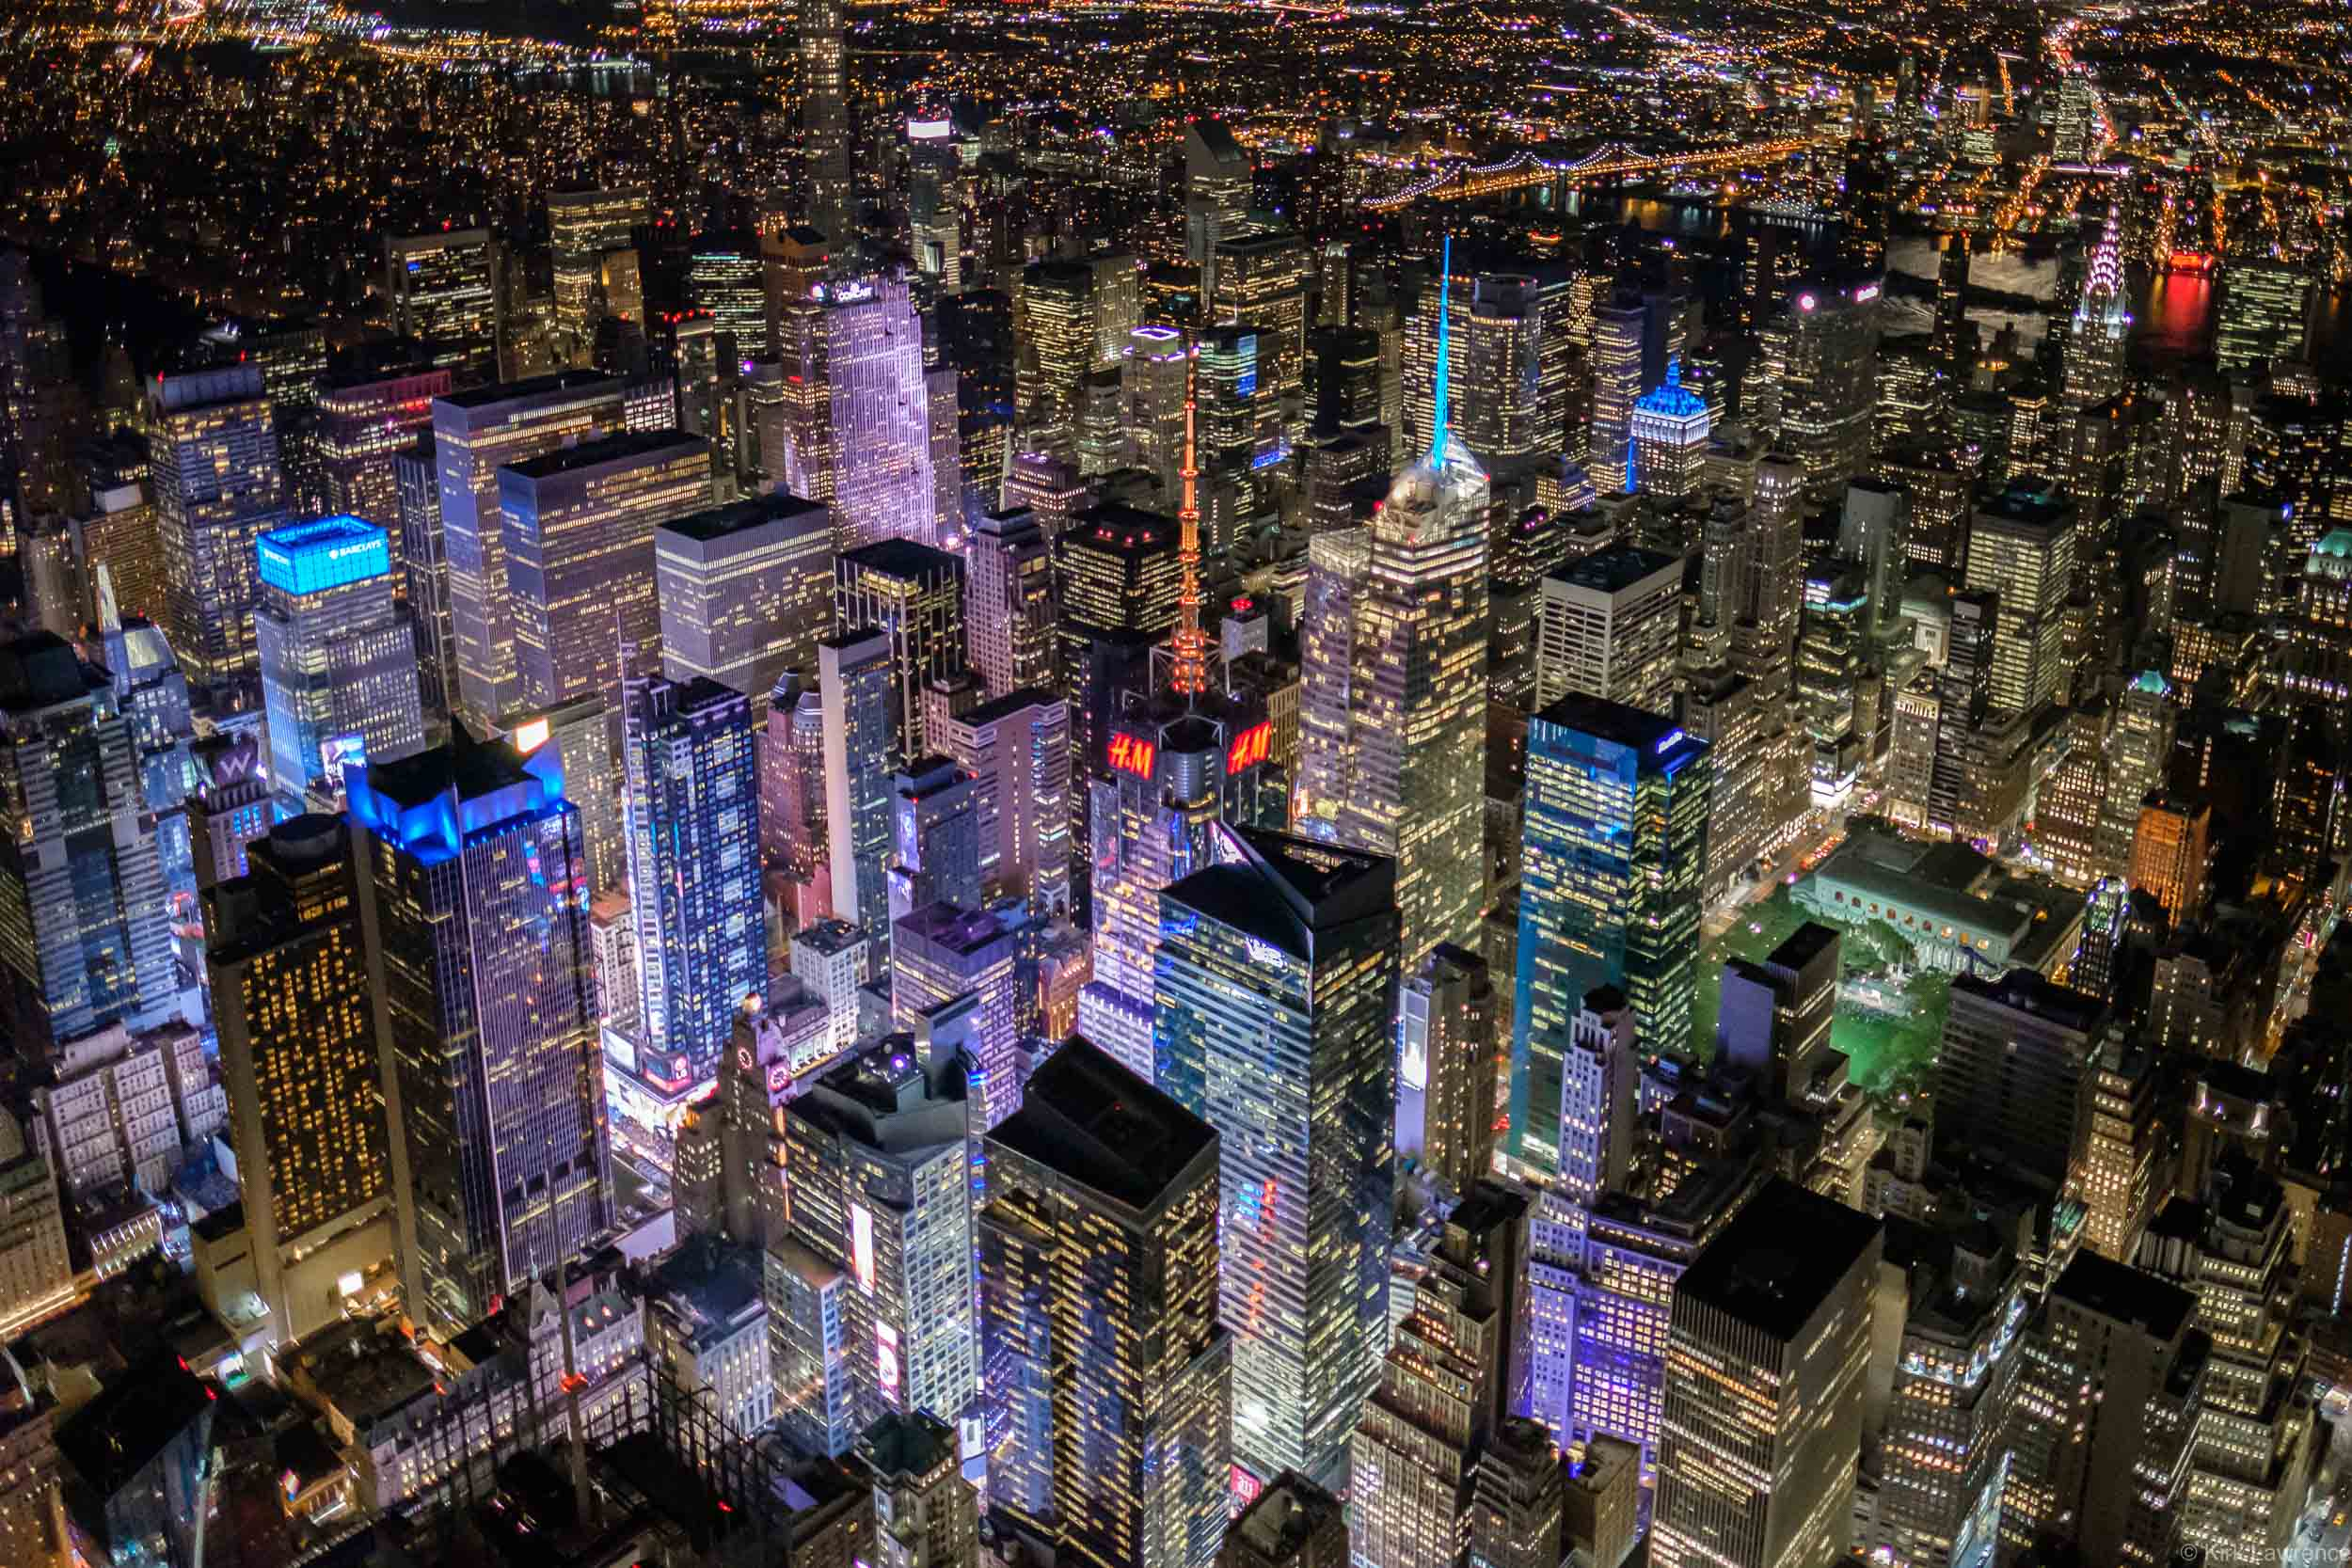 helicopter_view_Manhattan_Times_Square_New_York_City_nighttime.jpg